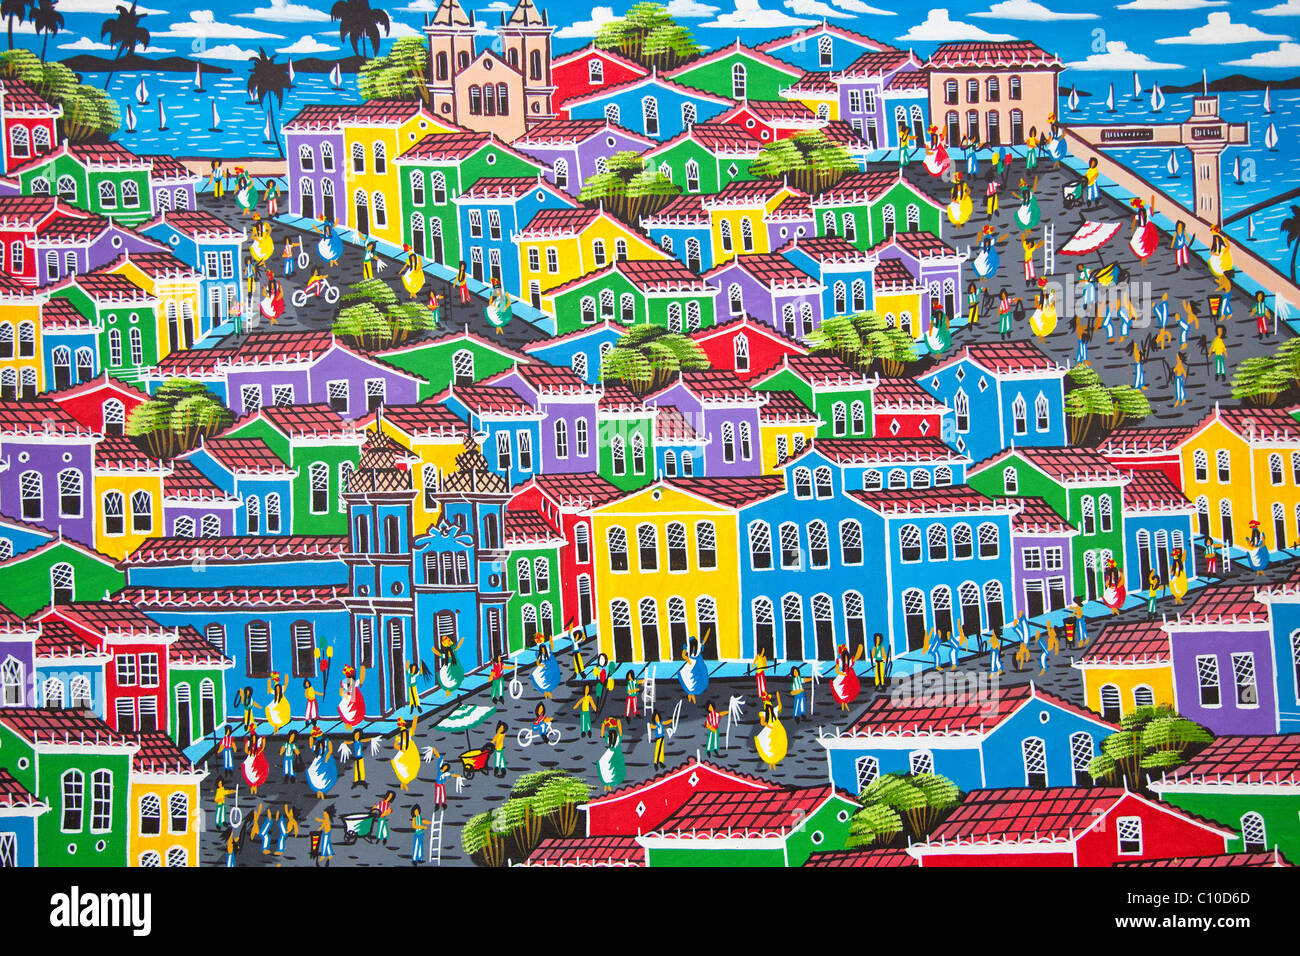 Souvenir painting in Pelourinho or the old town, Salvador, Brazil - Stock Image